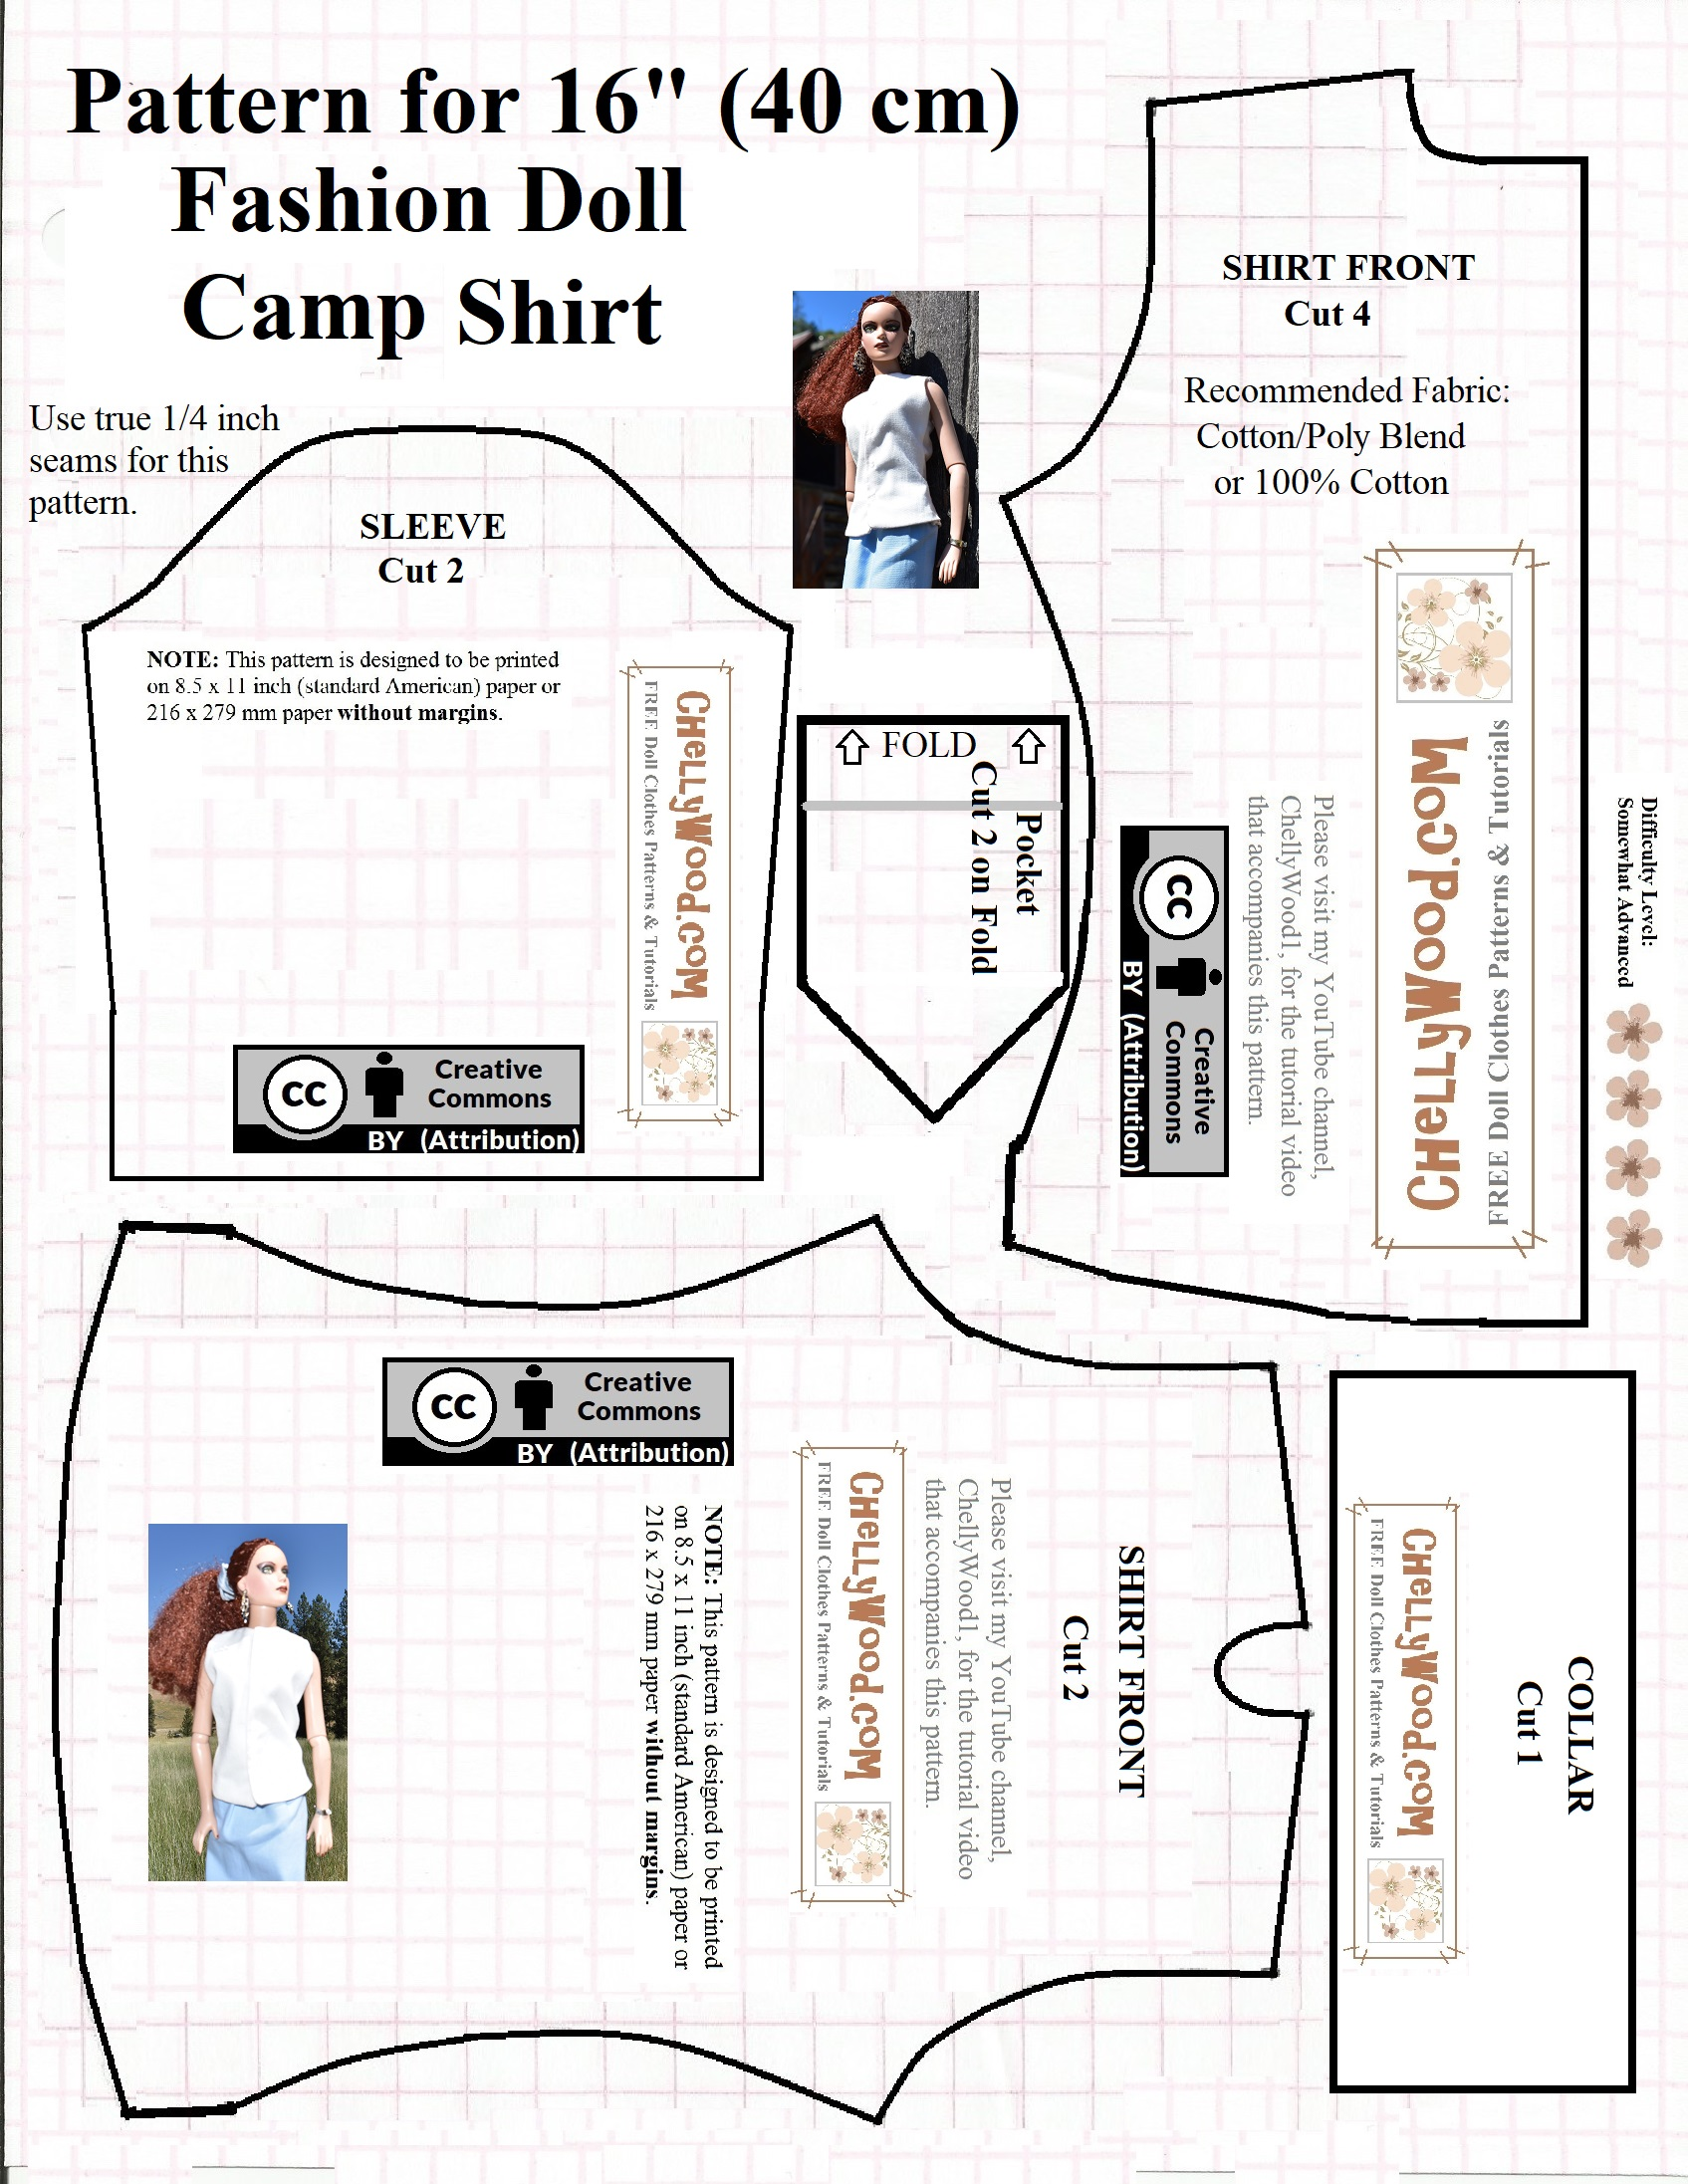 Free printable sewing pattern for 16 or 17 dolls camp shirt if youre not sure what to do after you click on that page just re visit my how to print patterns tutorial which is in the side margin jeuxipadfo Images